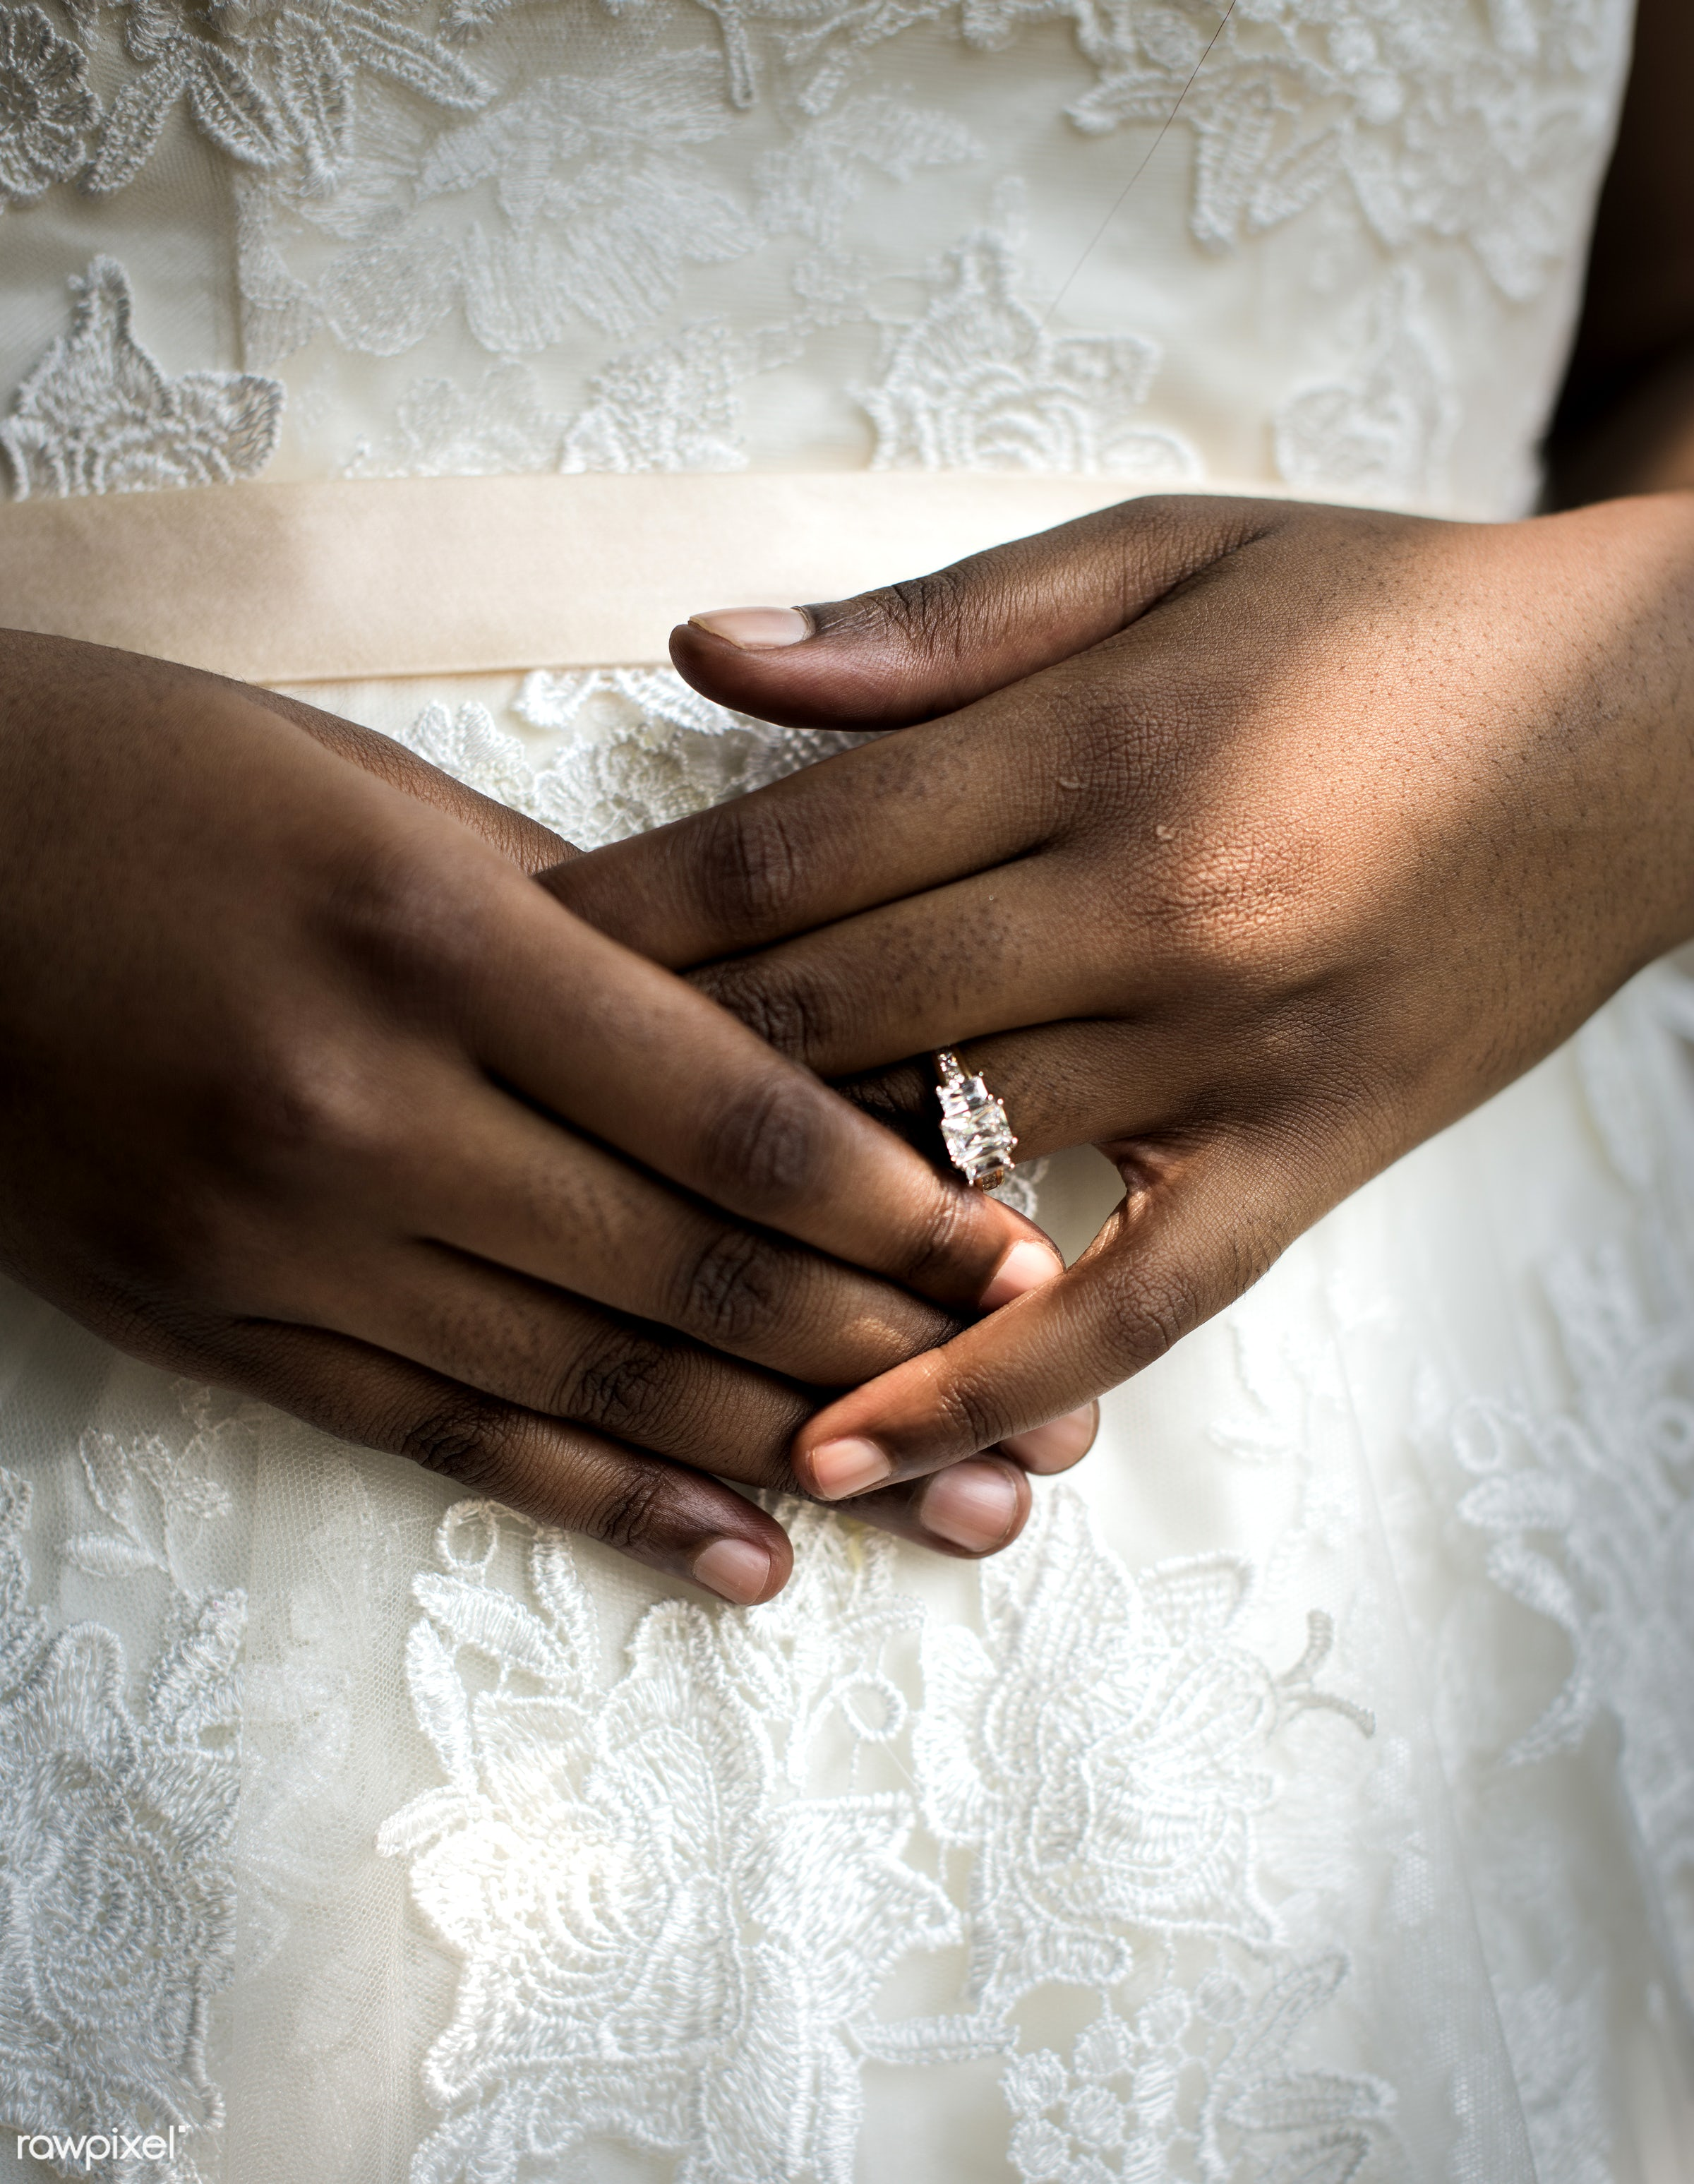 bride, african descent, ceremony, closeup, engagement, fiance, hands, holding, lace, love, newlywed, people, reception, ring...